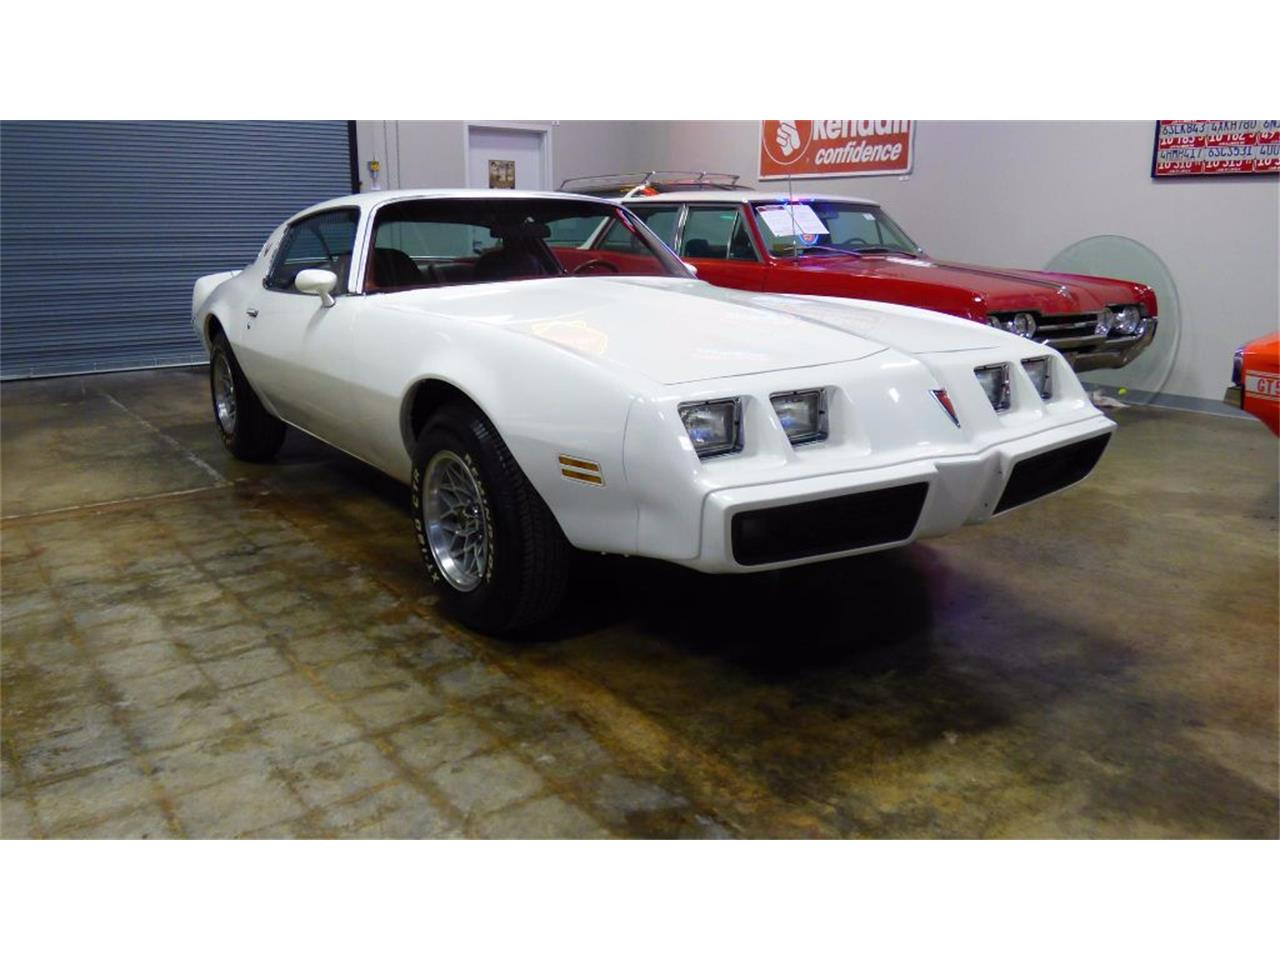 Large Picture of 1979 Pontiac Firebird - $14,995.00 Offered by Cruisers Specialty Autos - F2EV